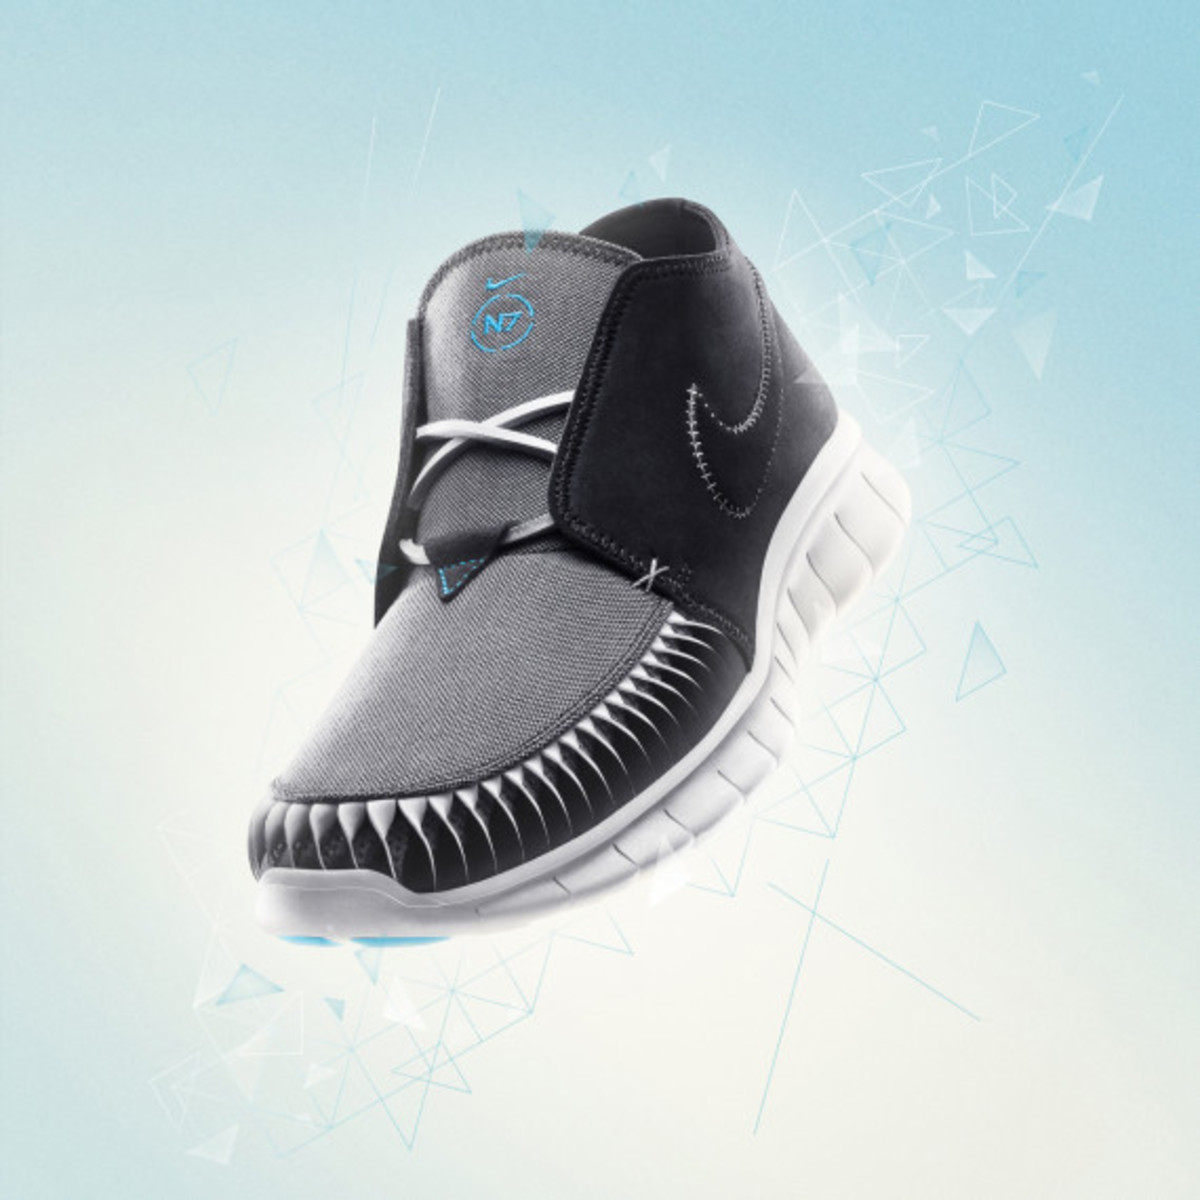 nike-n7-summer-2014-collection-23